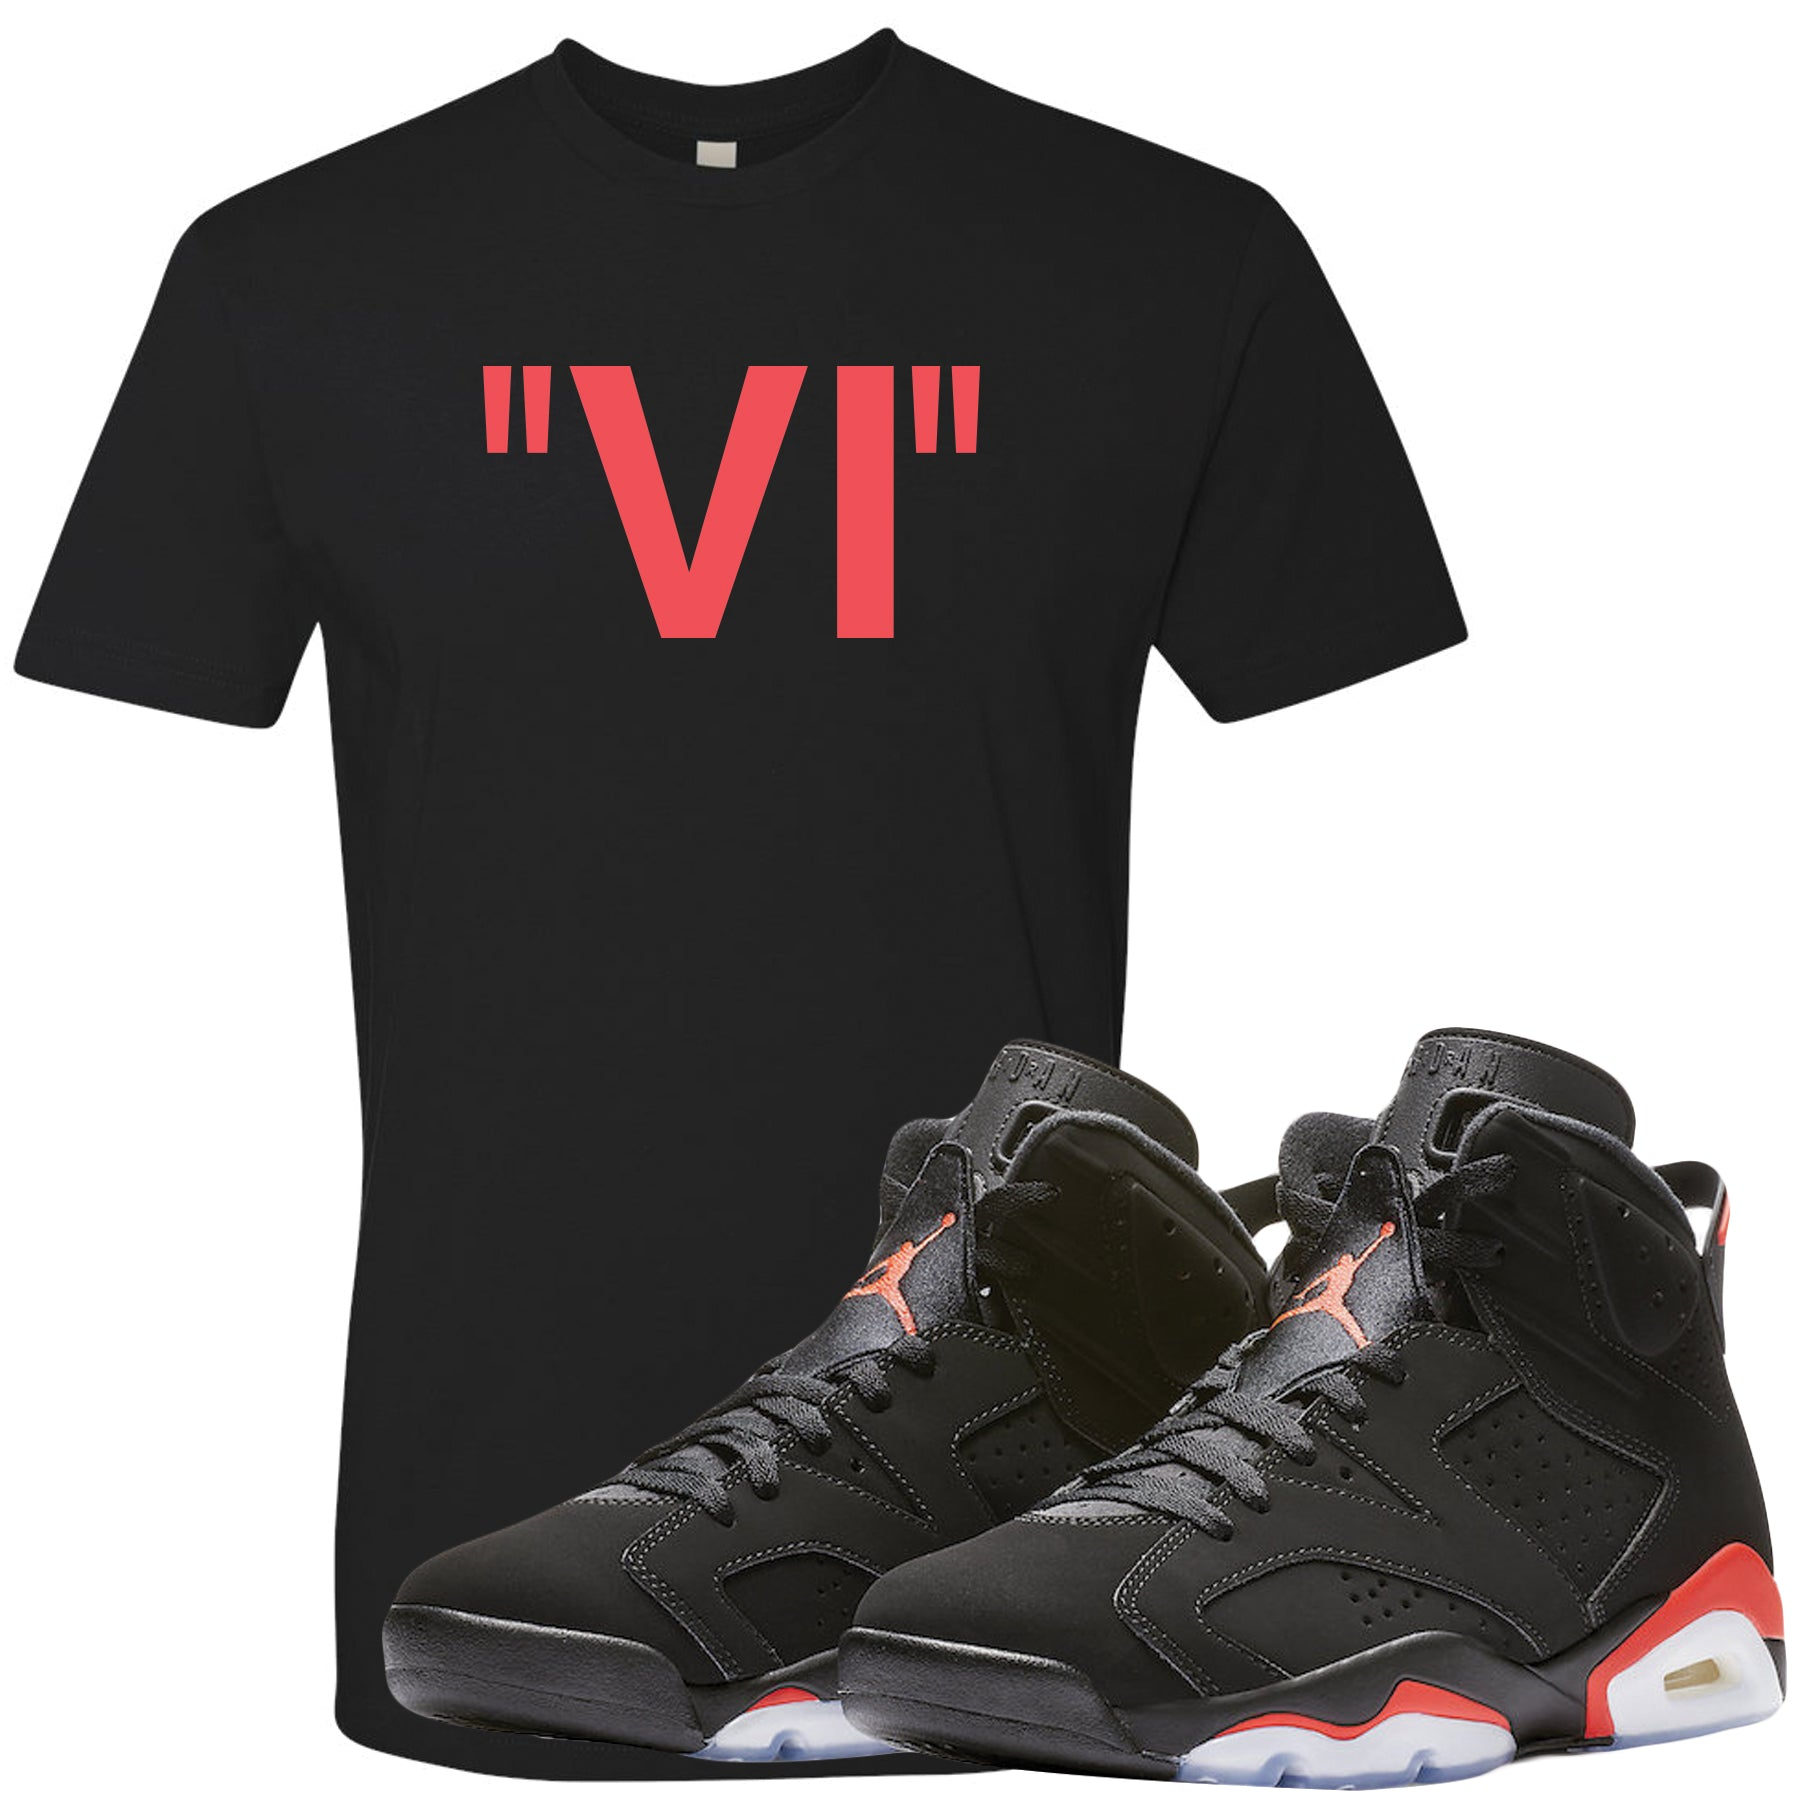 19cd4cddf The Jordan 6 Infrared Sneaker Matching Tee is custom designed to perfectly  match the retro Jordan